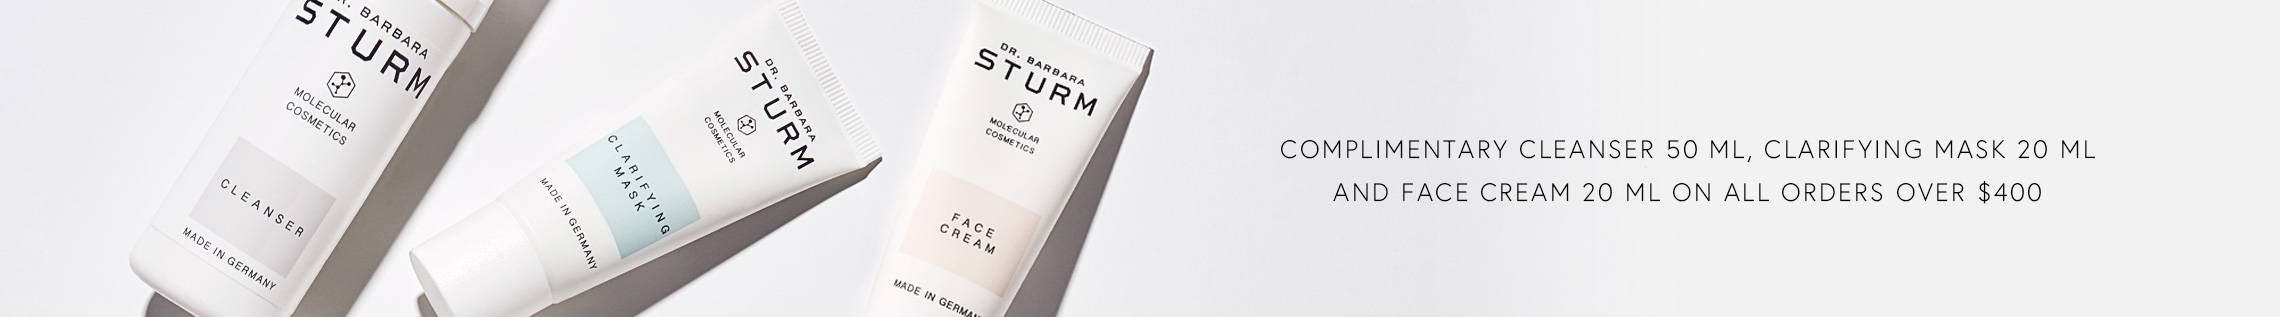 dr-barbara-sturm-complimentary-cleanser-clarifying-mask-and-face-cream-on-all-orders-over-$400